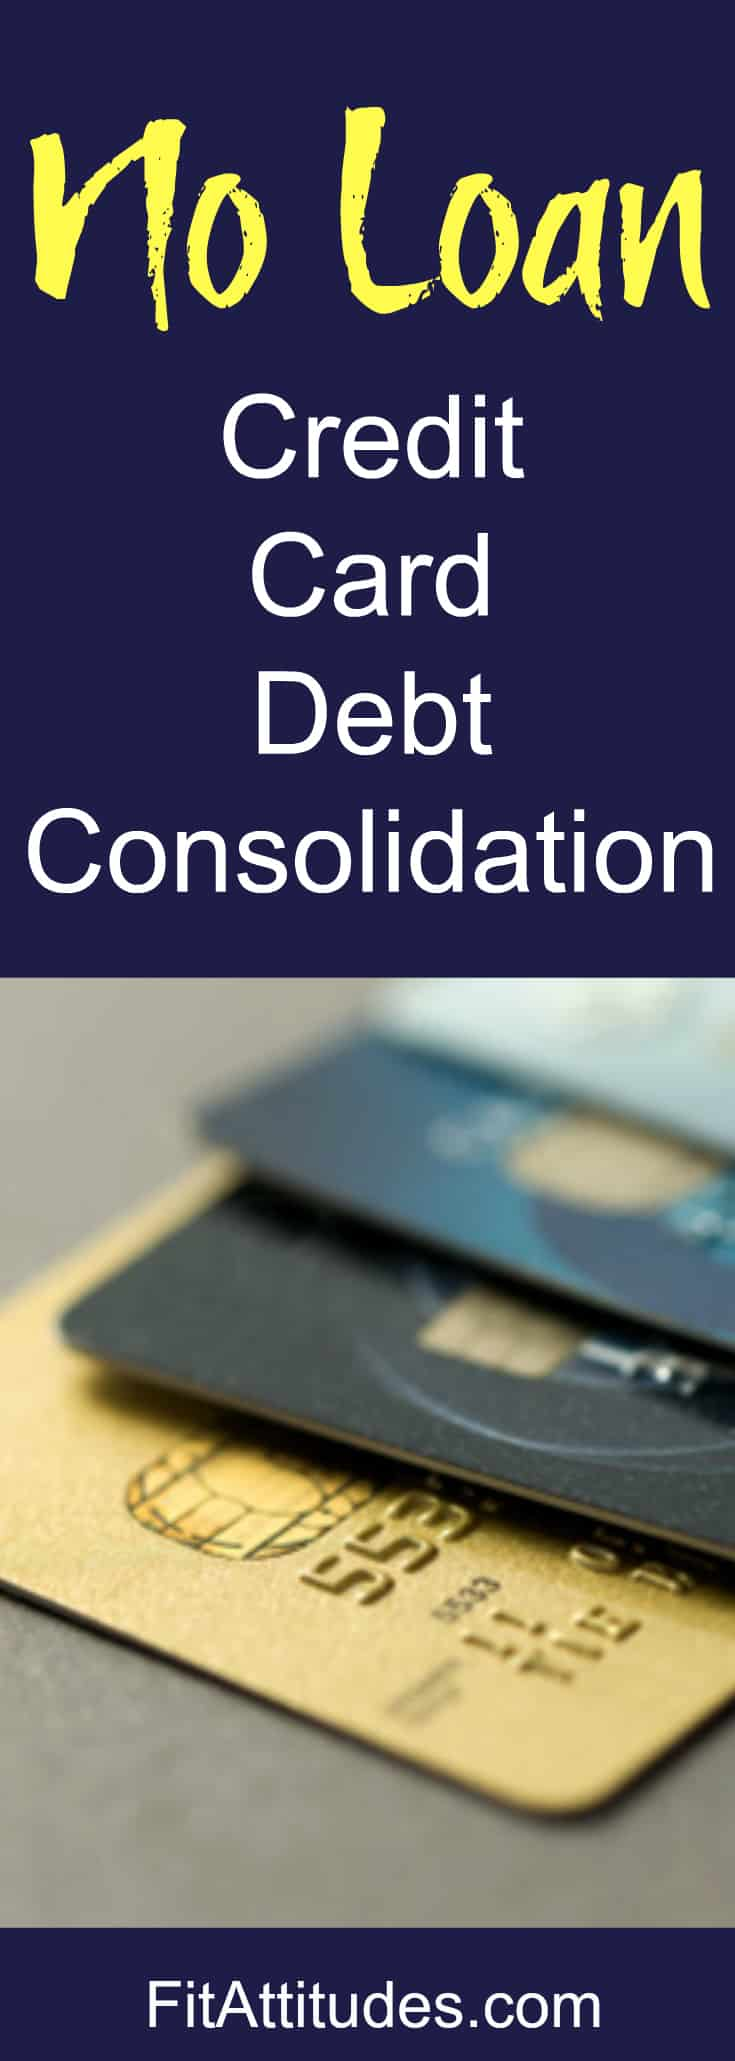 Consolidate credit card debt with this easy no loan method.